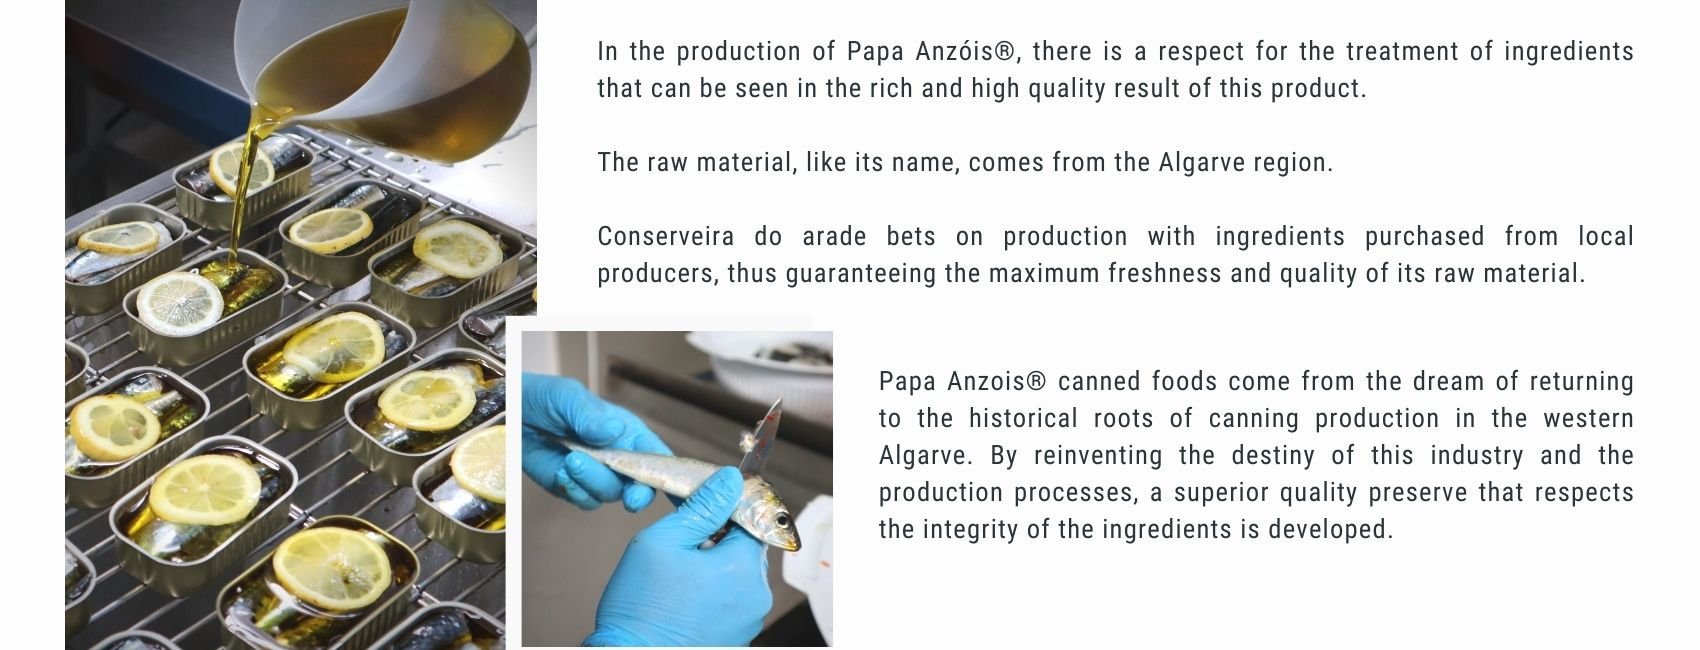 In the production of Papa Anzóis®, there is a respect for the treatment of ingredients that can be seen in the rich and high quality result of this product.  The raw material, like its name, comes from the Algarve region.  Conserveira do arade bets on production with ingredients purchased from local producers, thus guaranteeing the maximum freshness and quality of its raw material.